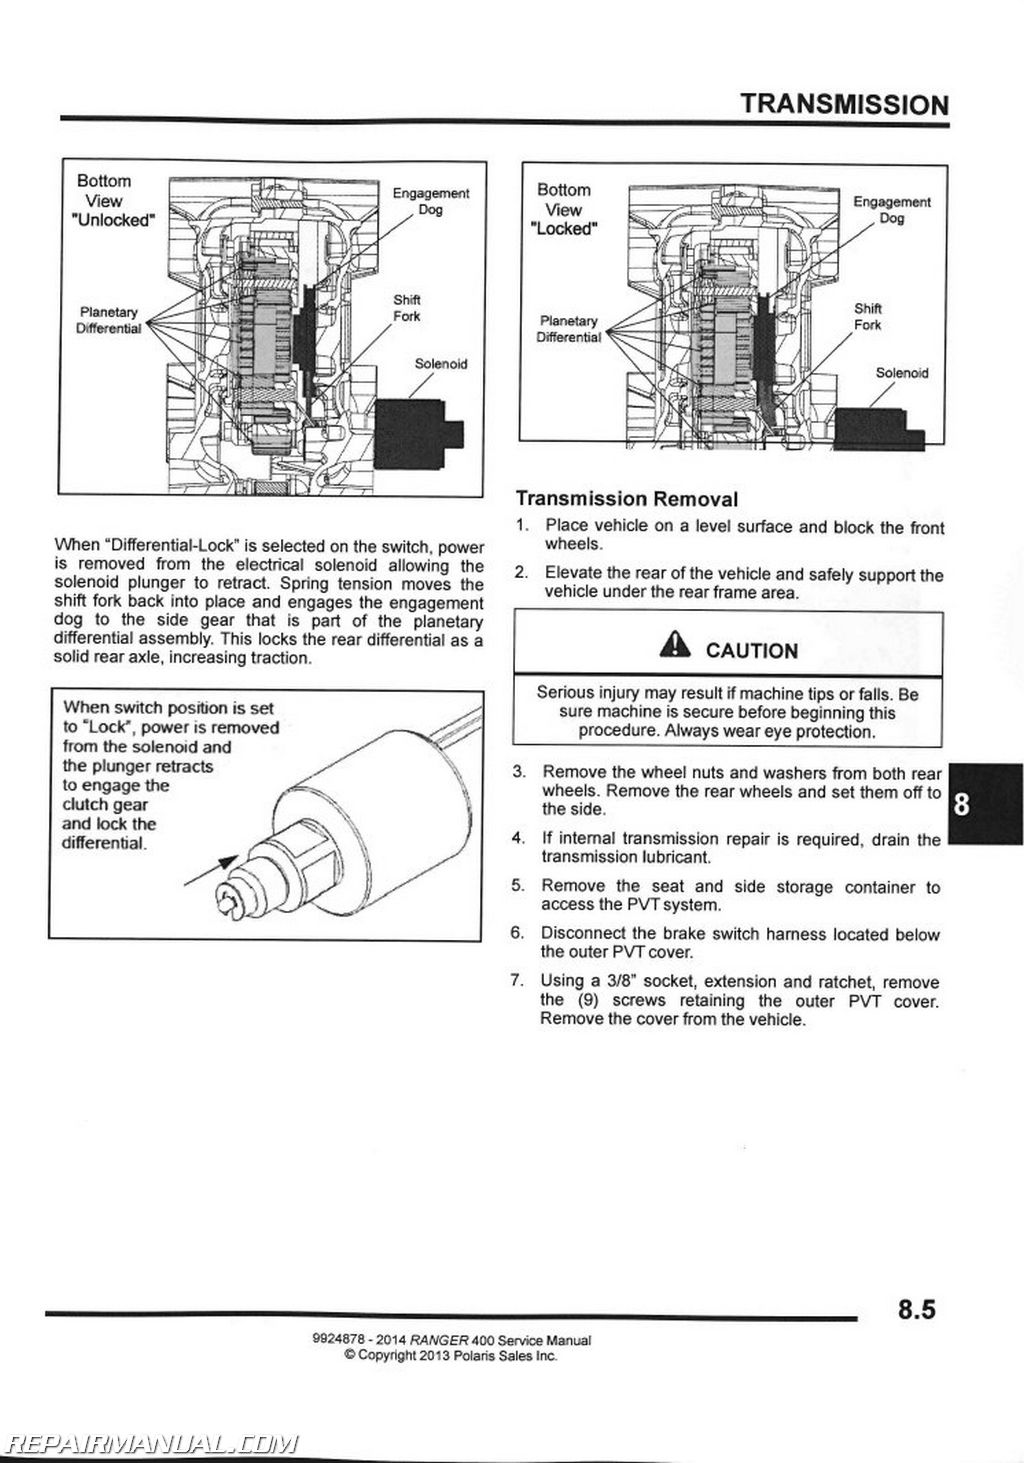 hight resolution of 2014 polaris ranger 400 side by side service manual rh repairmanual com 2013 polaris ranger wiring diagram polaris electrical schematics